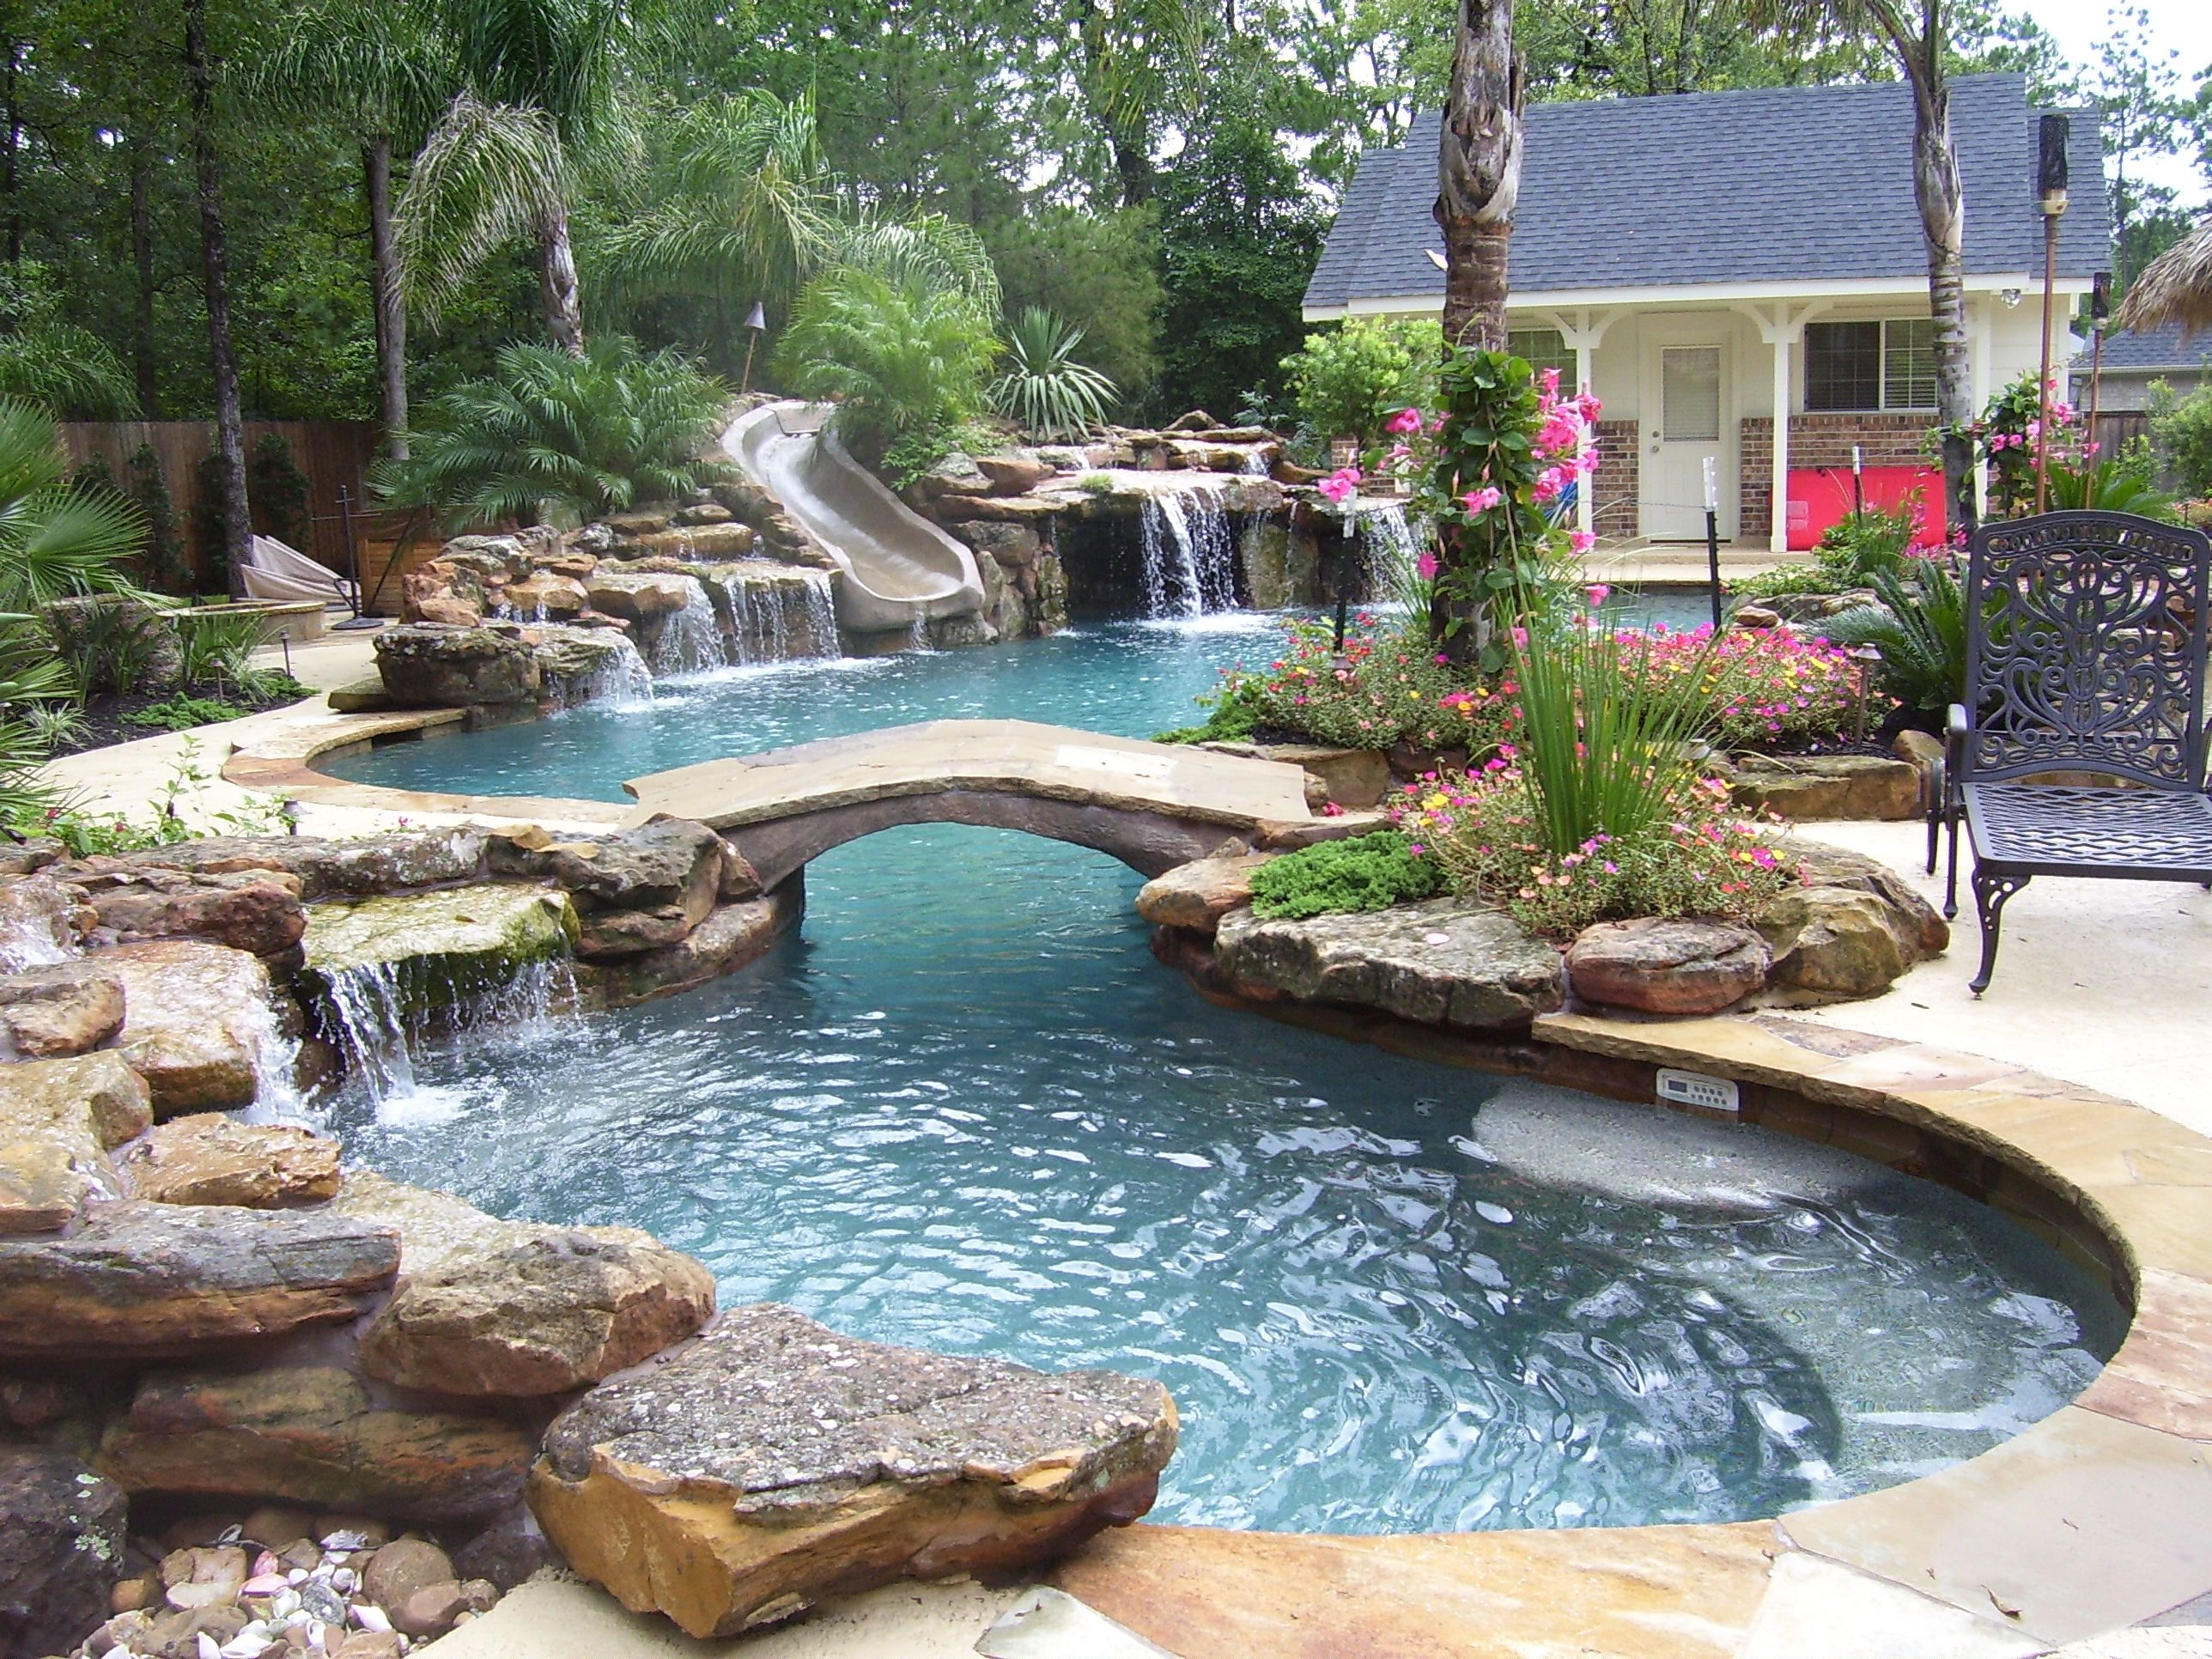 Natural Mossrock Waterfall Pool With Slide Beach Entry And Small River Swimming Pools Backyard Backyard Pool Swimming Pool Designs